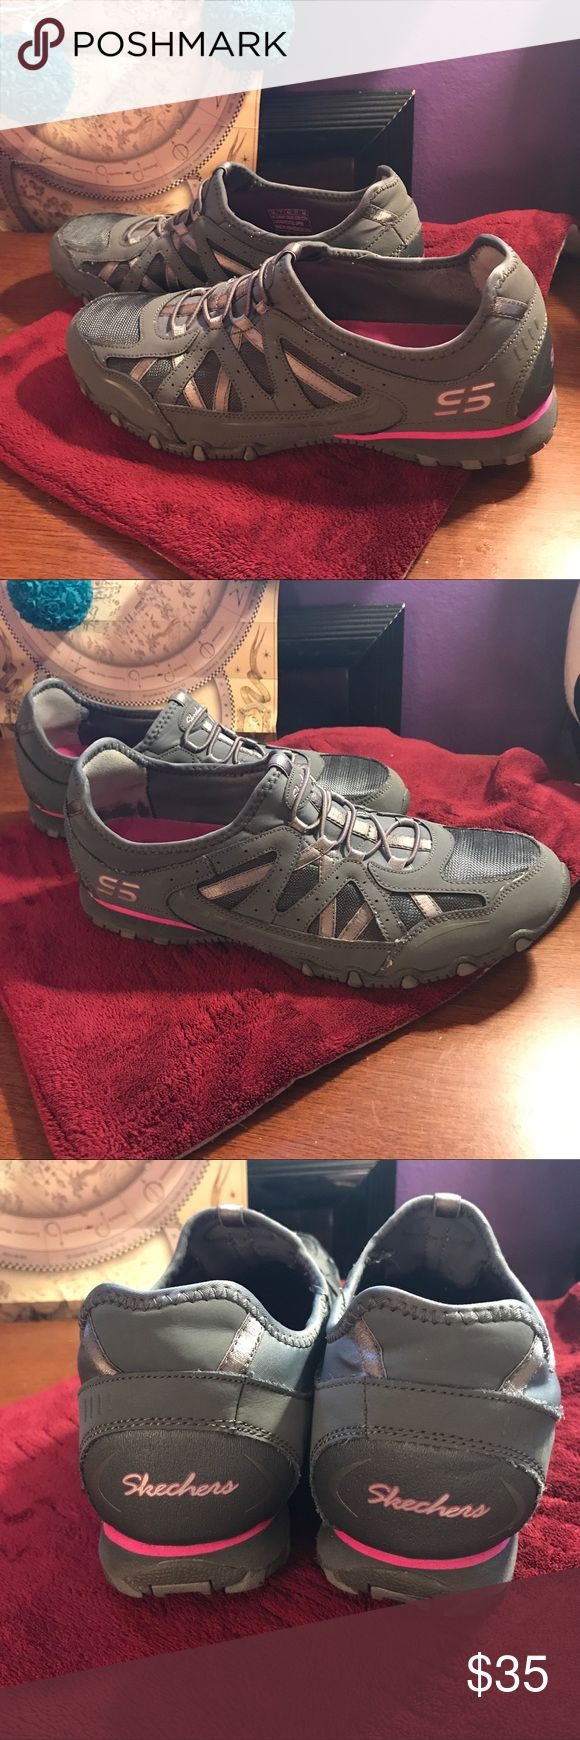 Skechers shoes Womens size 10 sport walking With the weather warming up its time to get outside! These Sketchers will keep you comfortable throughout the day! ♀️⛹♀️♀️ women's size 10!! LINK IN BIO!!!! #shoes #womensshoes #womensfashion #womensclothing #skechers #walking #running #outdoor #sport #comfortable #vacation #forsale #ebay #depop #poshmark  #seller #blackowned Skechers Shoes Sneakers